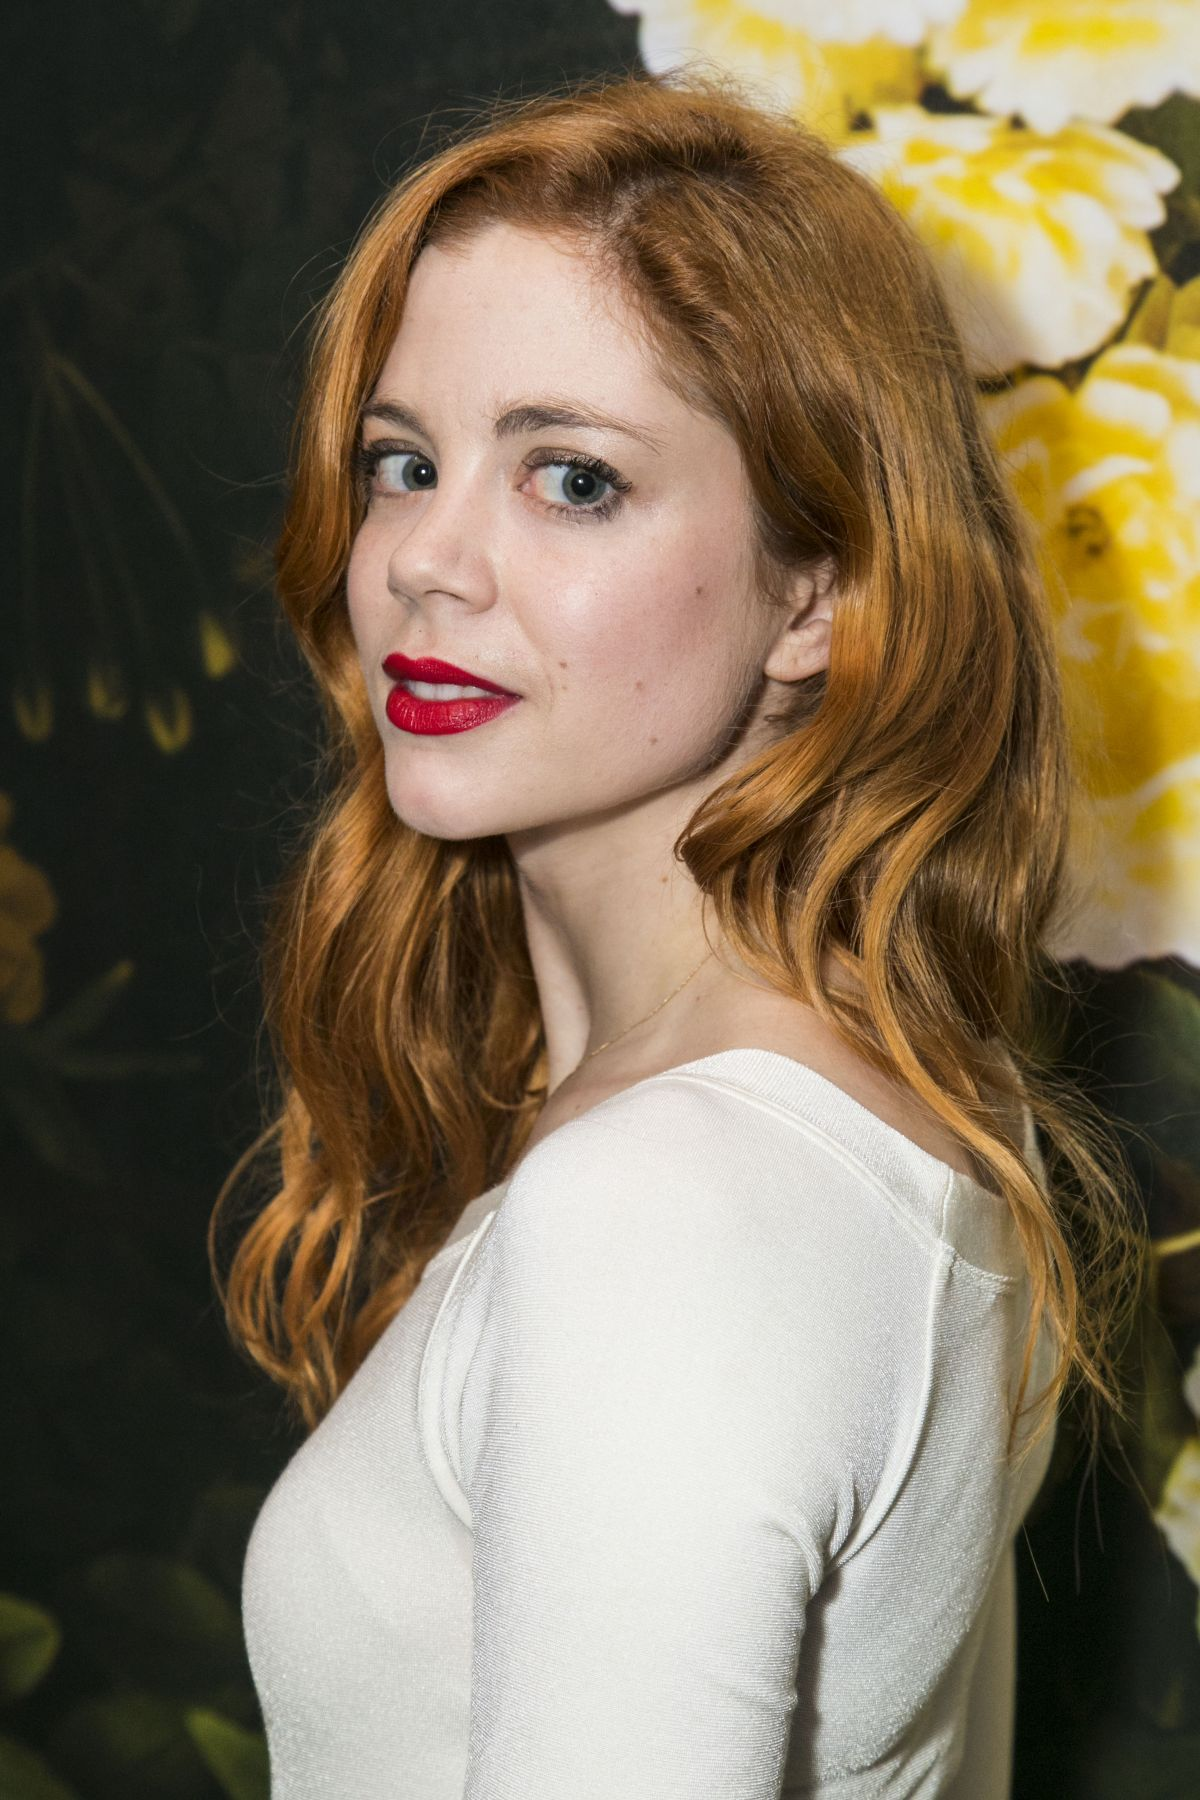 Pictures Charlotte Hope nudes (96 photos), Tits, Leaked, Instagram, braless 2017